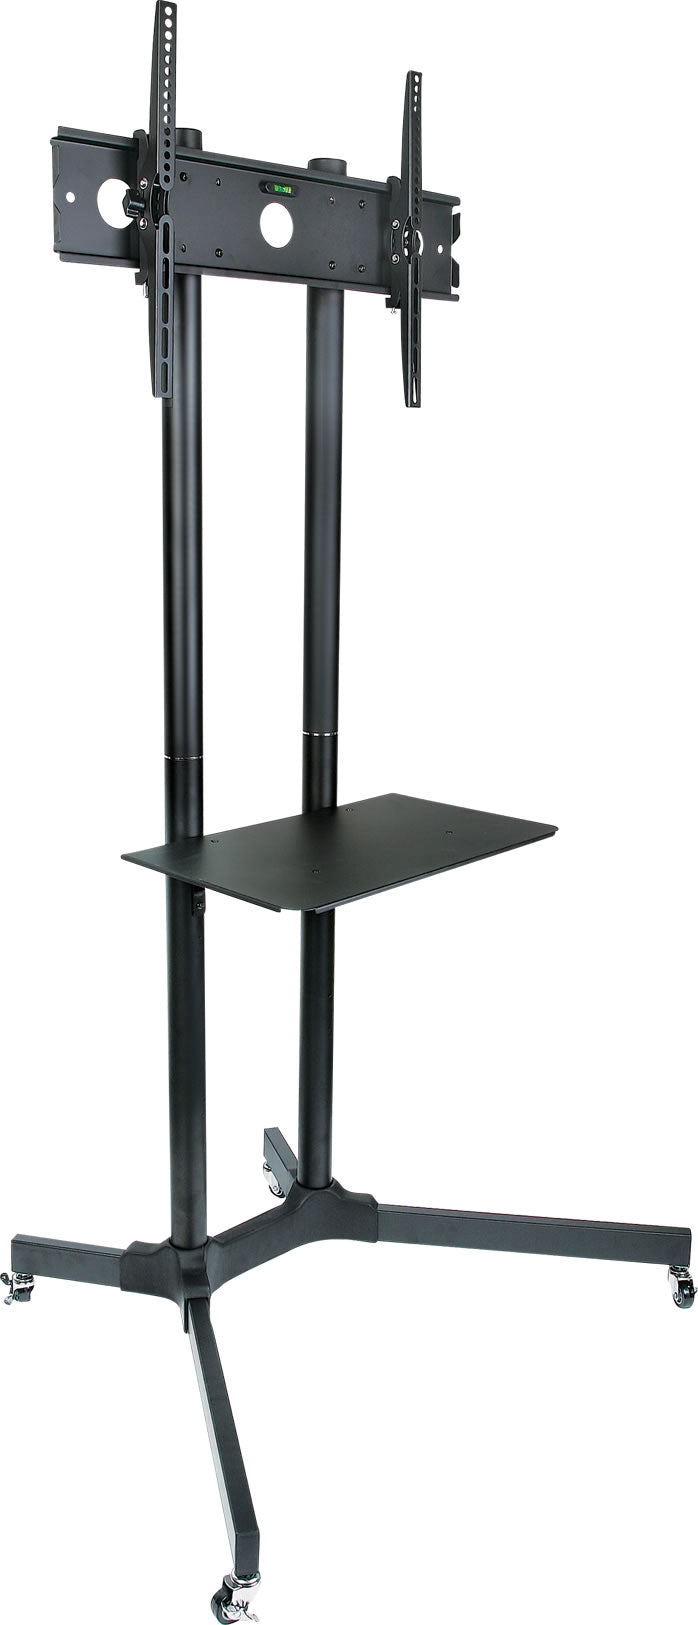 64-1221 Mobile Adjustable Height LCD LED TV / Monitor Stand for 30-65 inches Screen